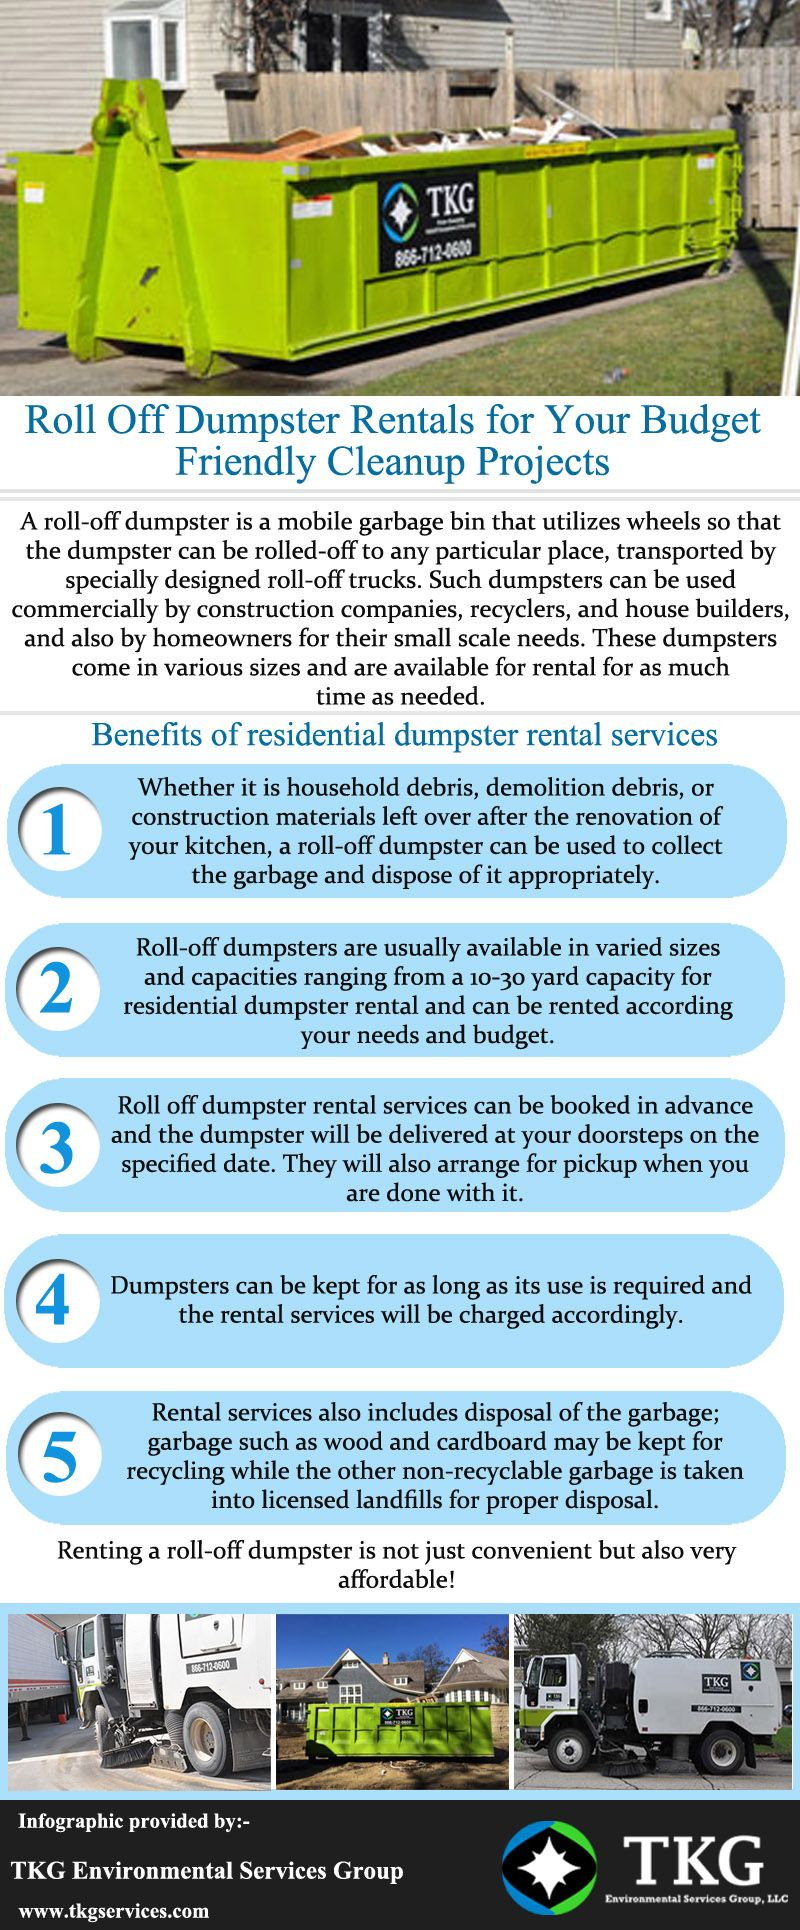 A Roll Off Dumpster Is A Mobile Garbage Bin That Utilizes Wheels So That The Dumpster Can Be Rolled Off To Any Parti Roll Off Dumpster Dumpster Rental Dumpster